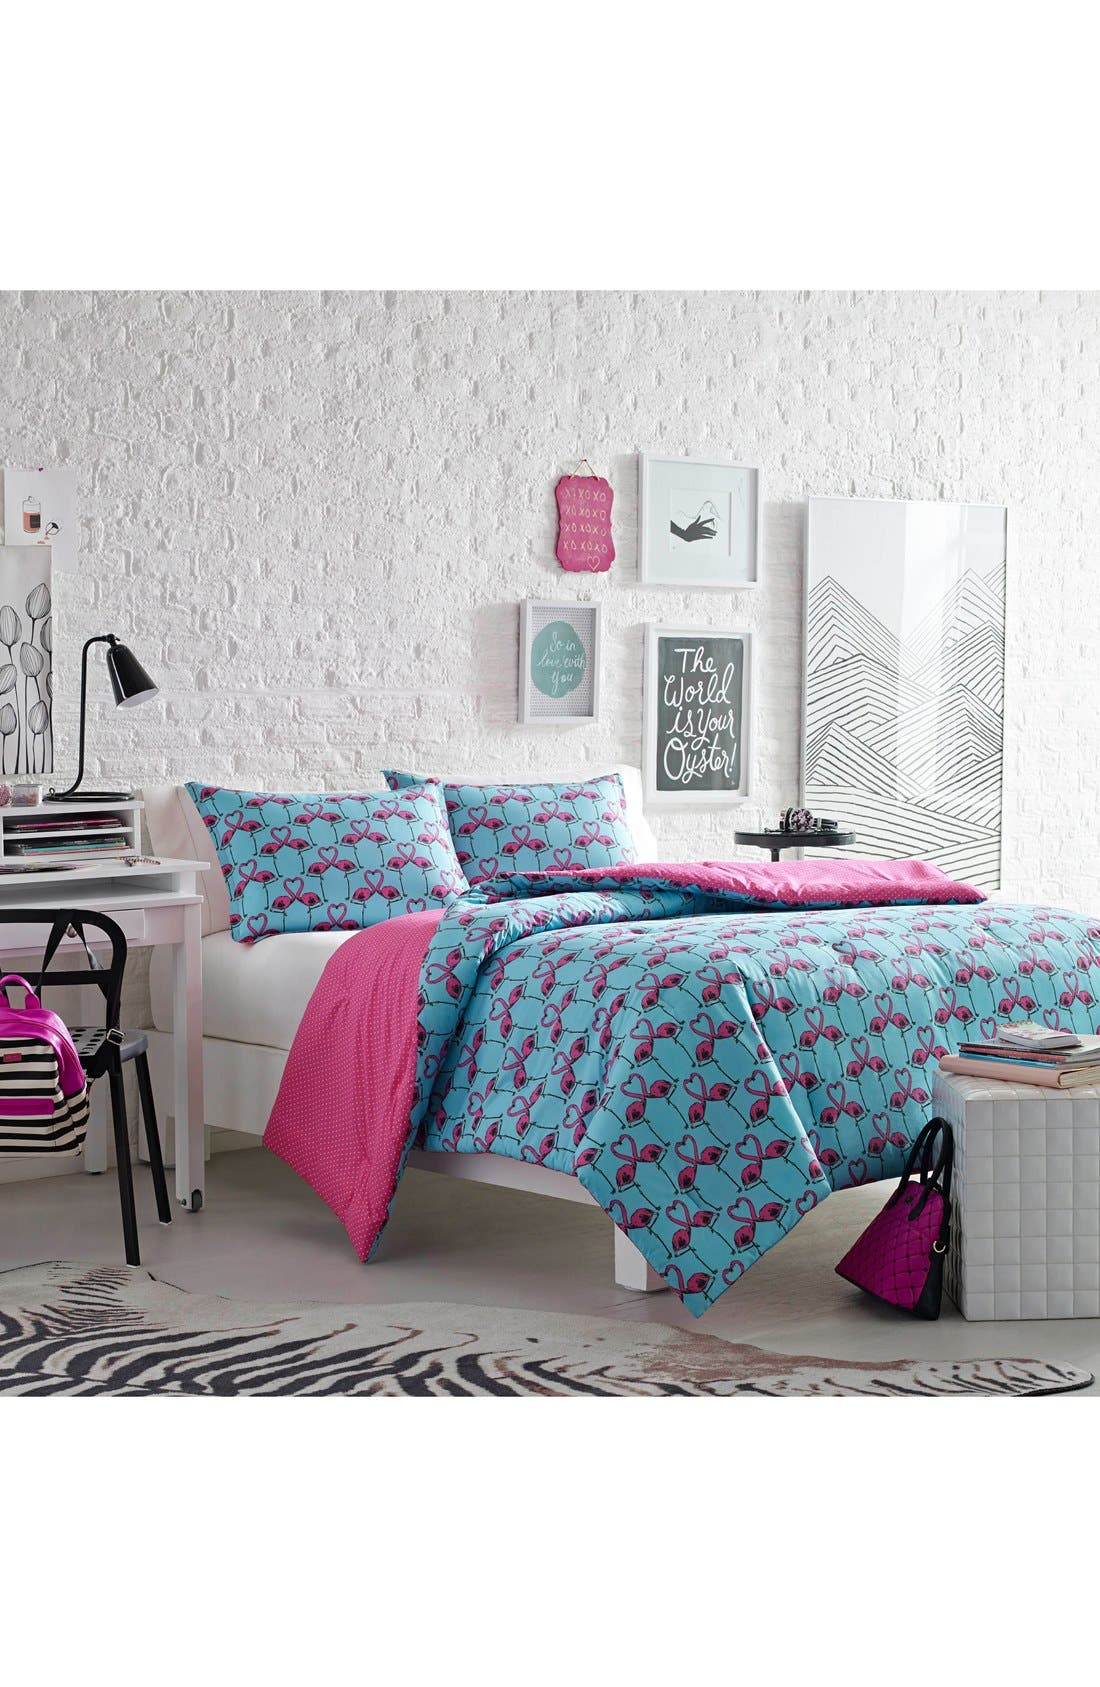 betsey johnson bedding bedding | nordstrom